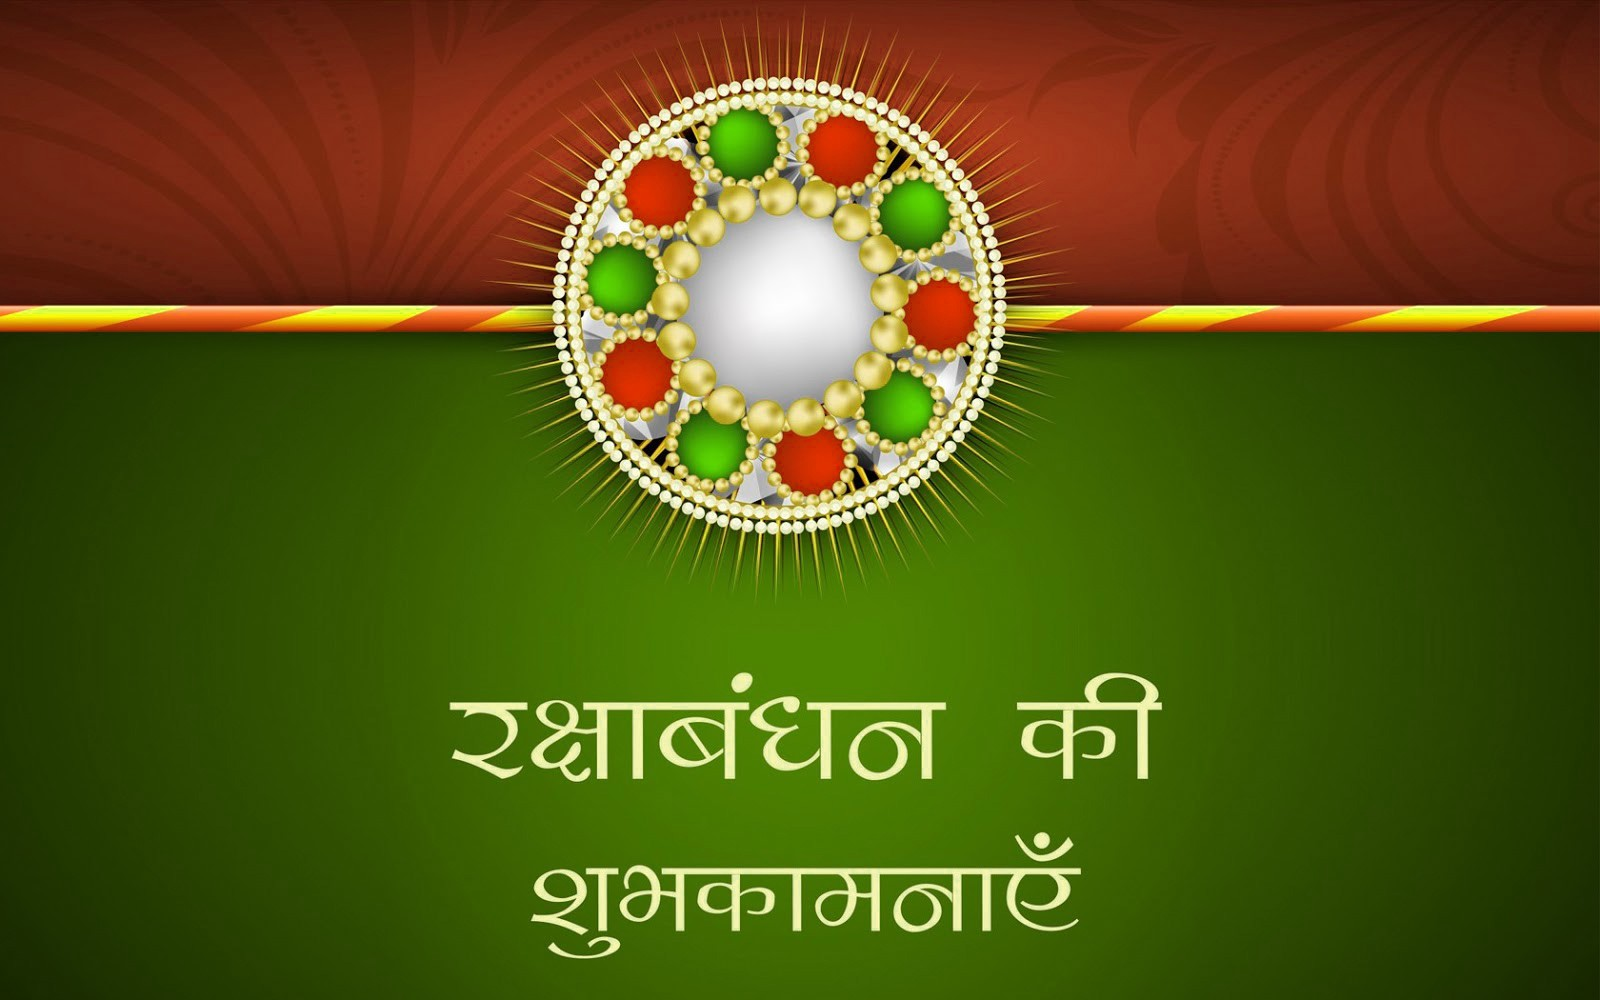 raksha bandhan wishes greetings hindi free download hd desktop background images